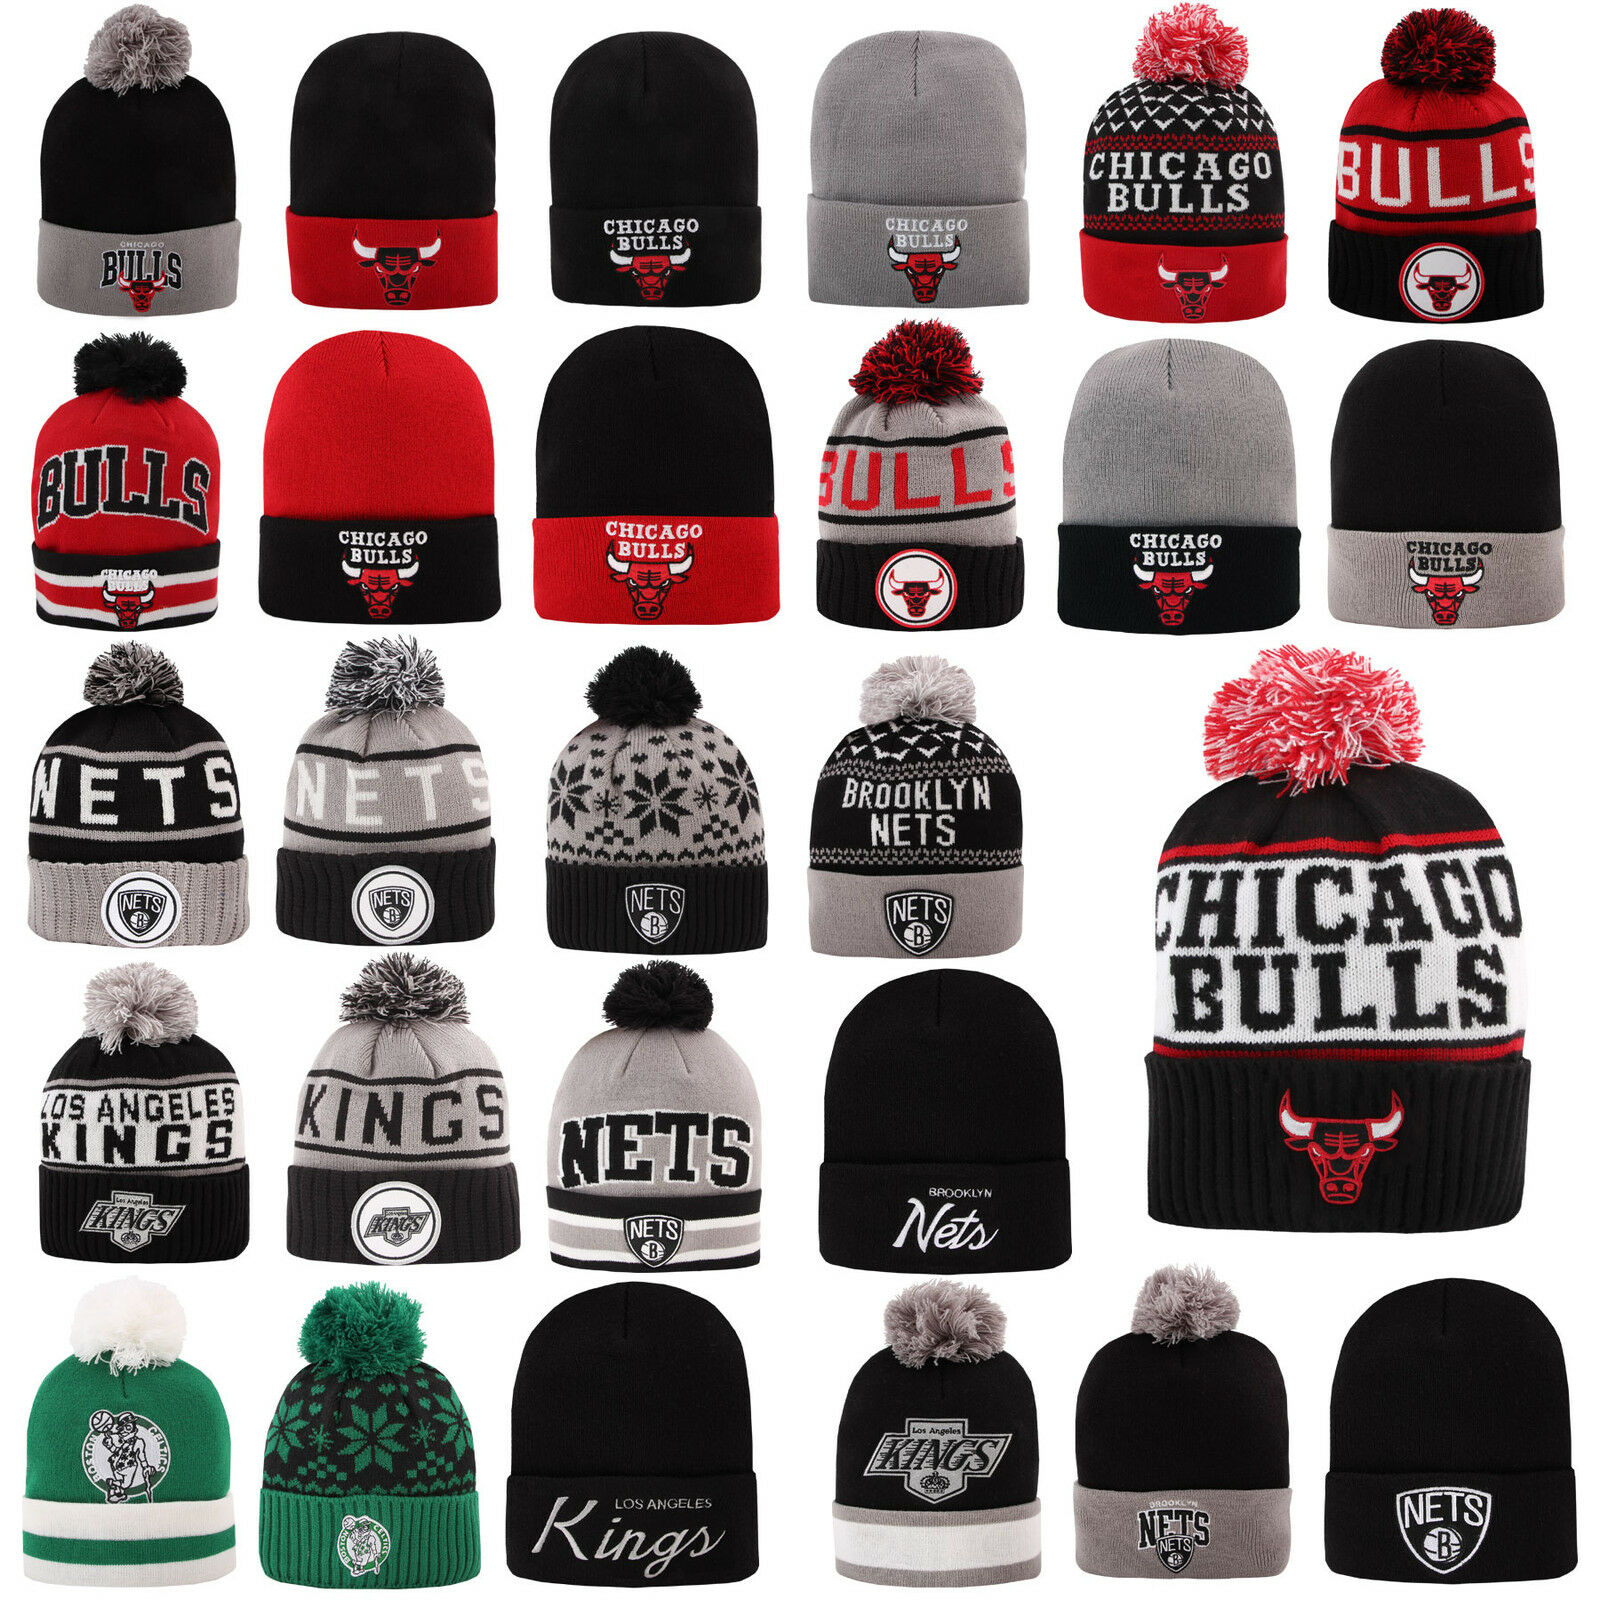 7d51375973b urbandreamz ltd https   stores.eBay.de urbandreamz ltd  bfa314  urbandreamz ltd 1. Mitchell   Ness Chicago Bulls Beanies